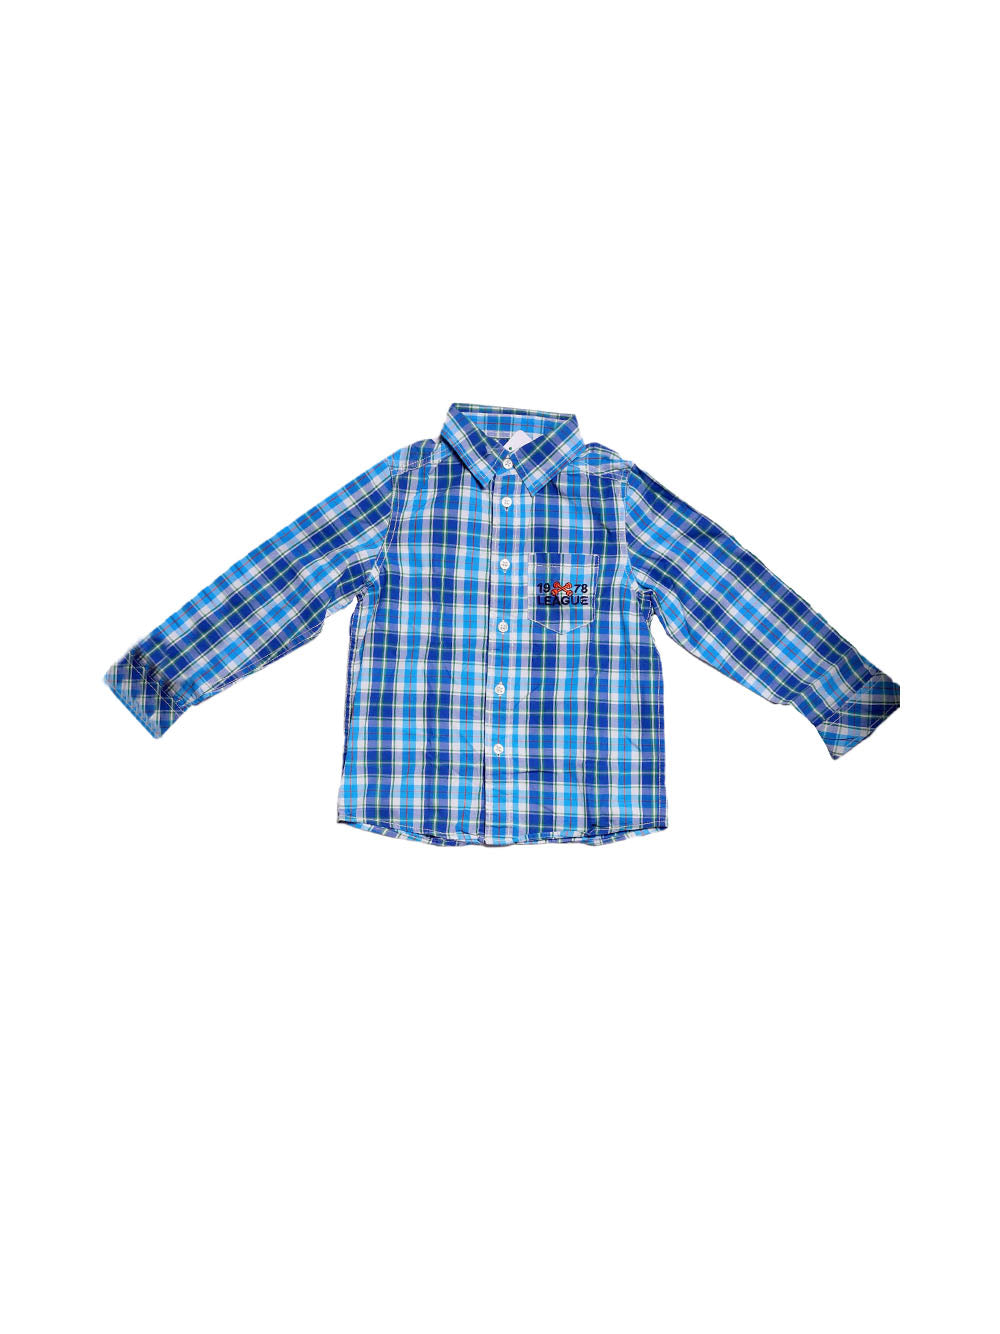 Front photo of Preloved Benetton Blue Boy's shirt - size 4-5 yrs